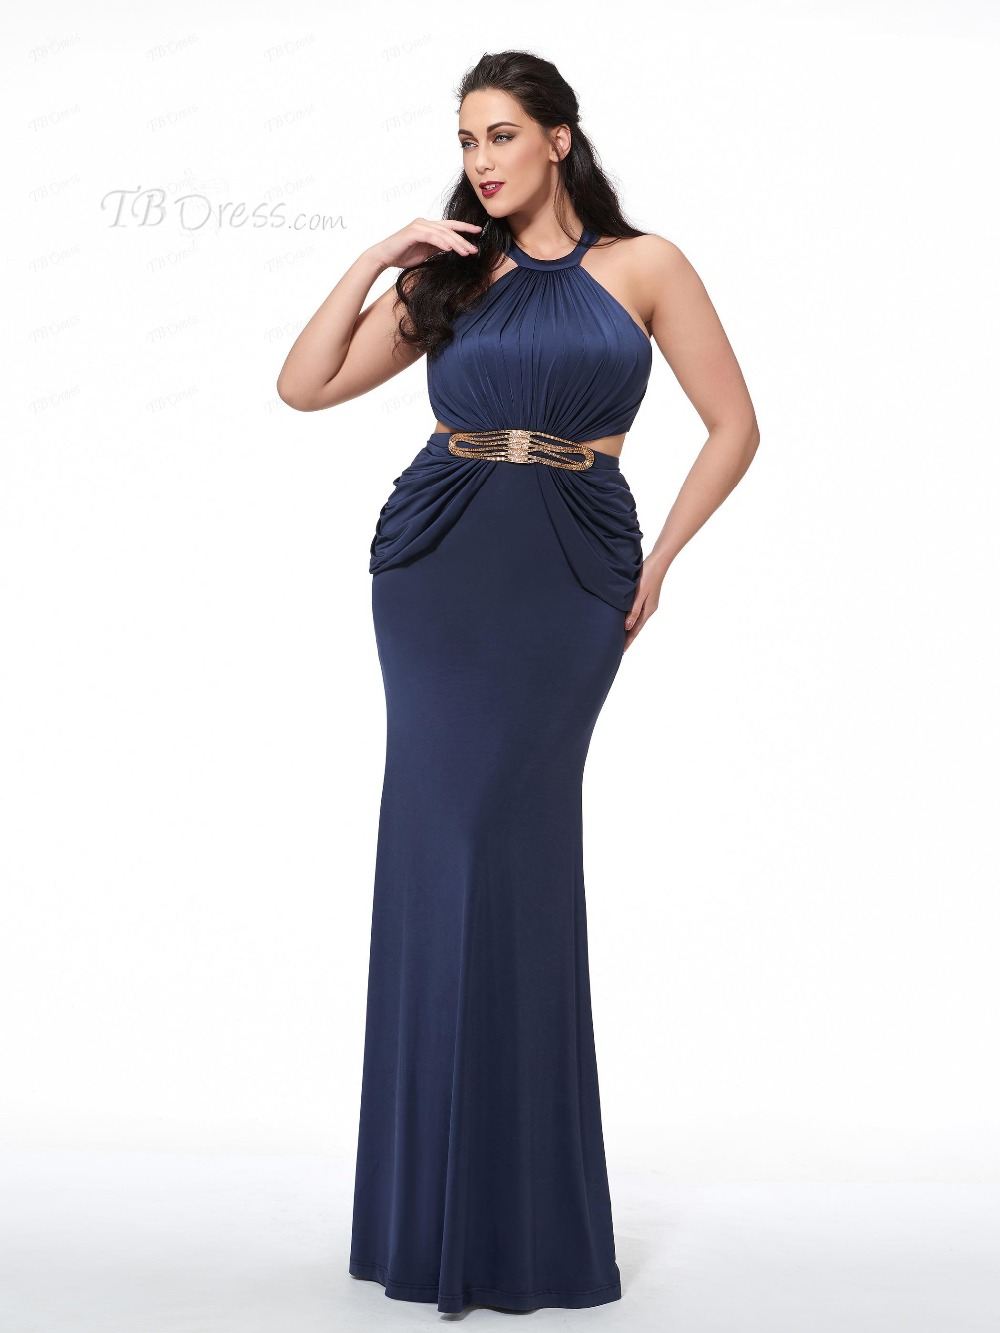 Hufanydrss Navy Blue Plus Size Prom Dresses 2017 Halter Hollow Back ...